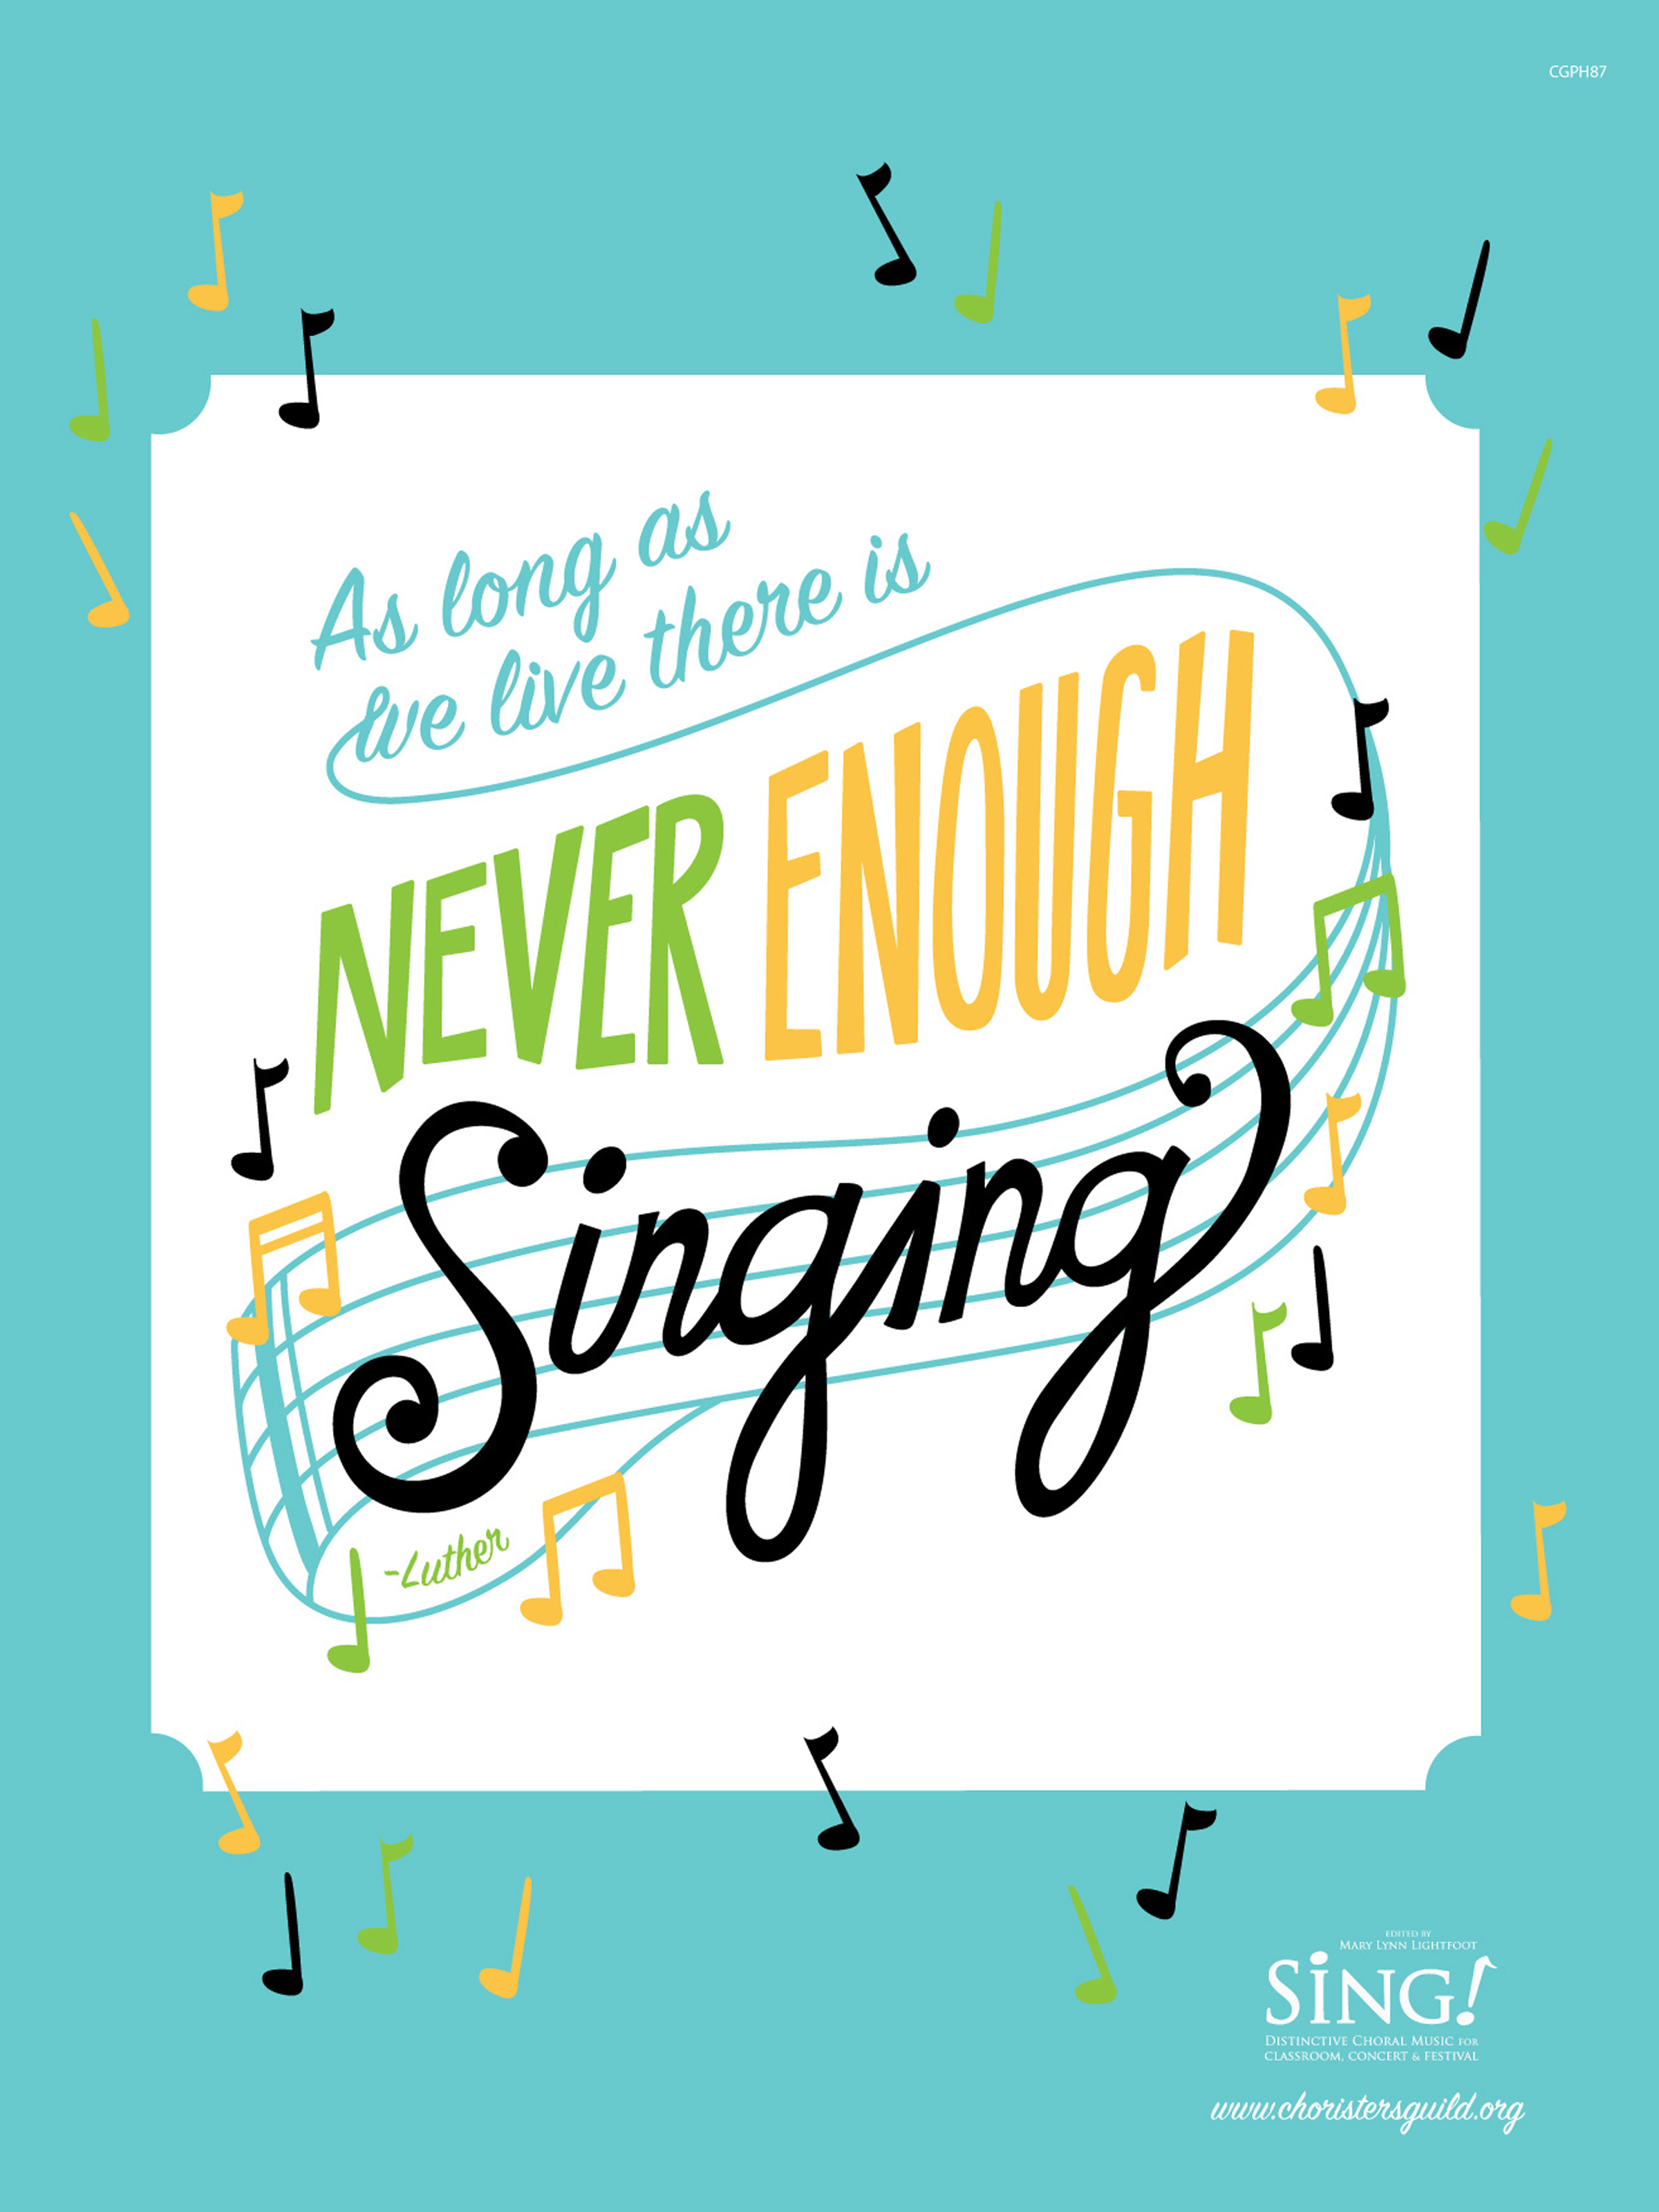 Never Enough Singing Poster - Sing! 2016